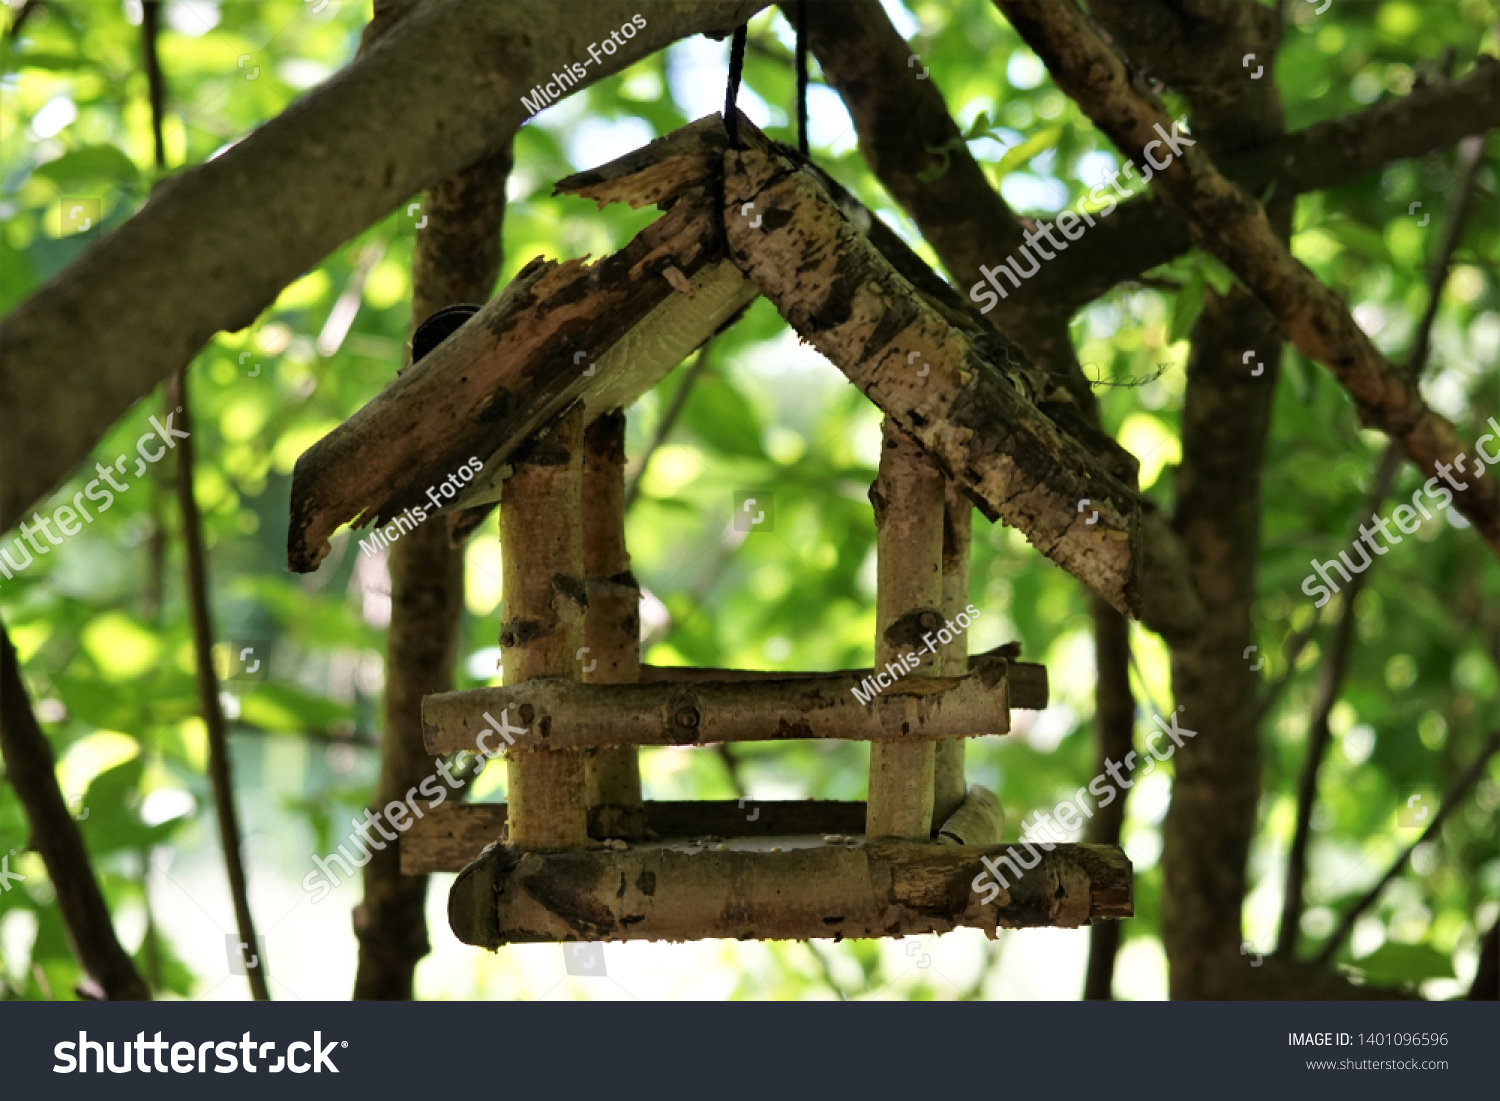 Wooden Bird Table Hanging On Tree Stock Photo Edit Now 1401096596